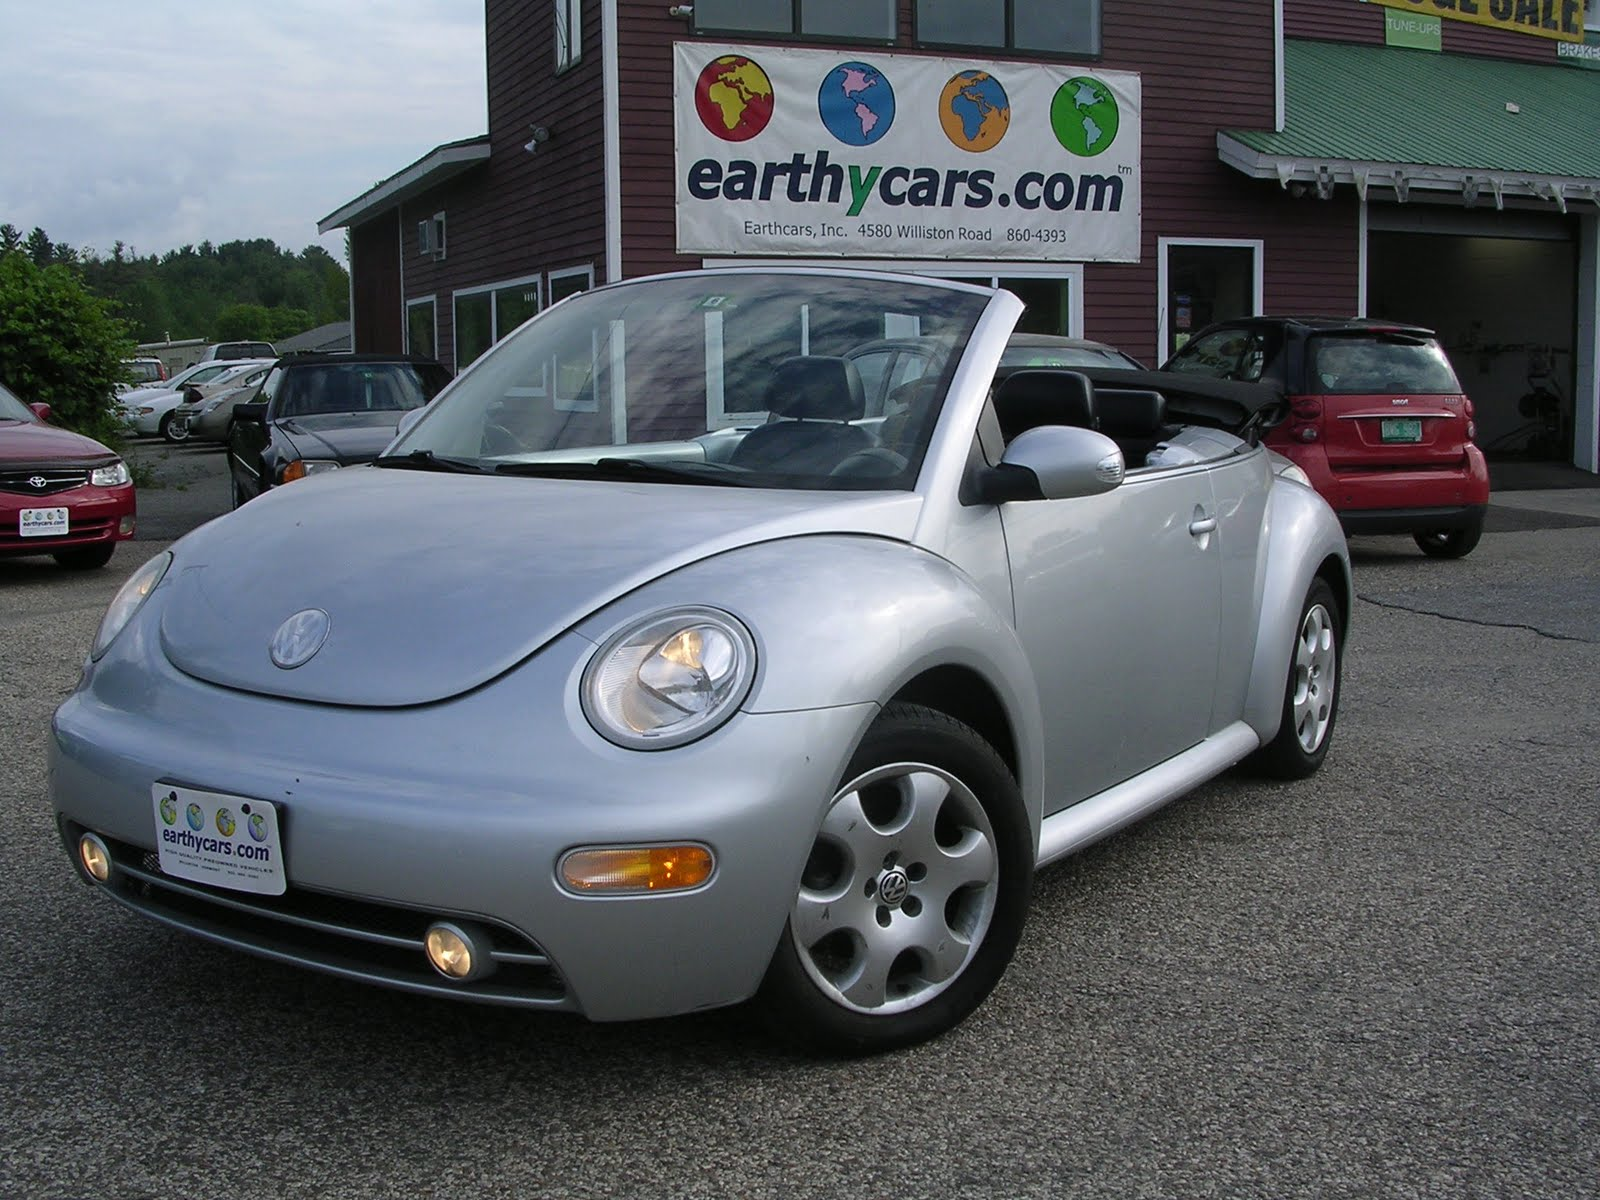 EARTHY CAR OF THE WEEK: 2003 VW New Beetle Convertible